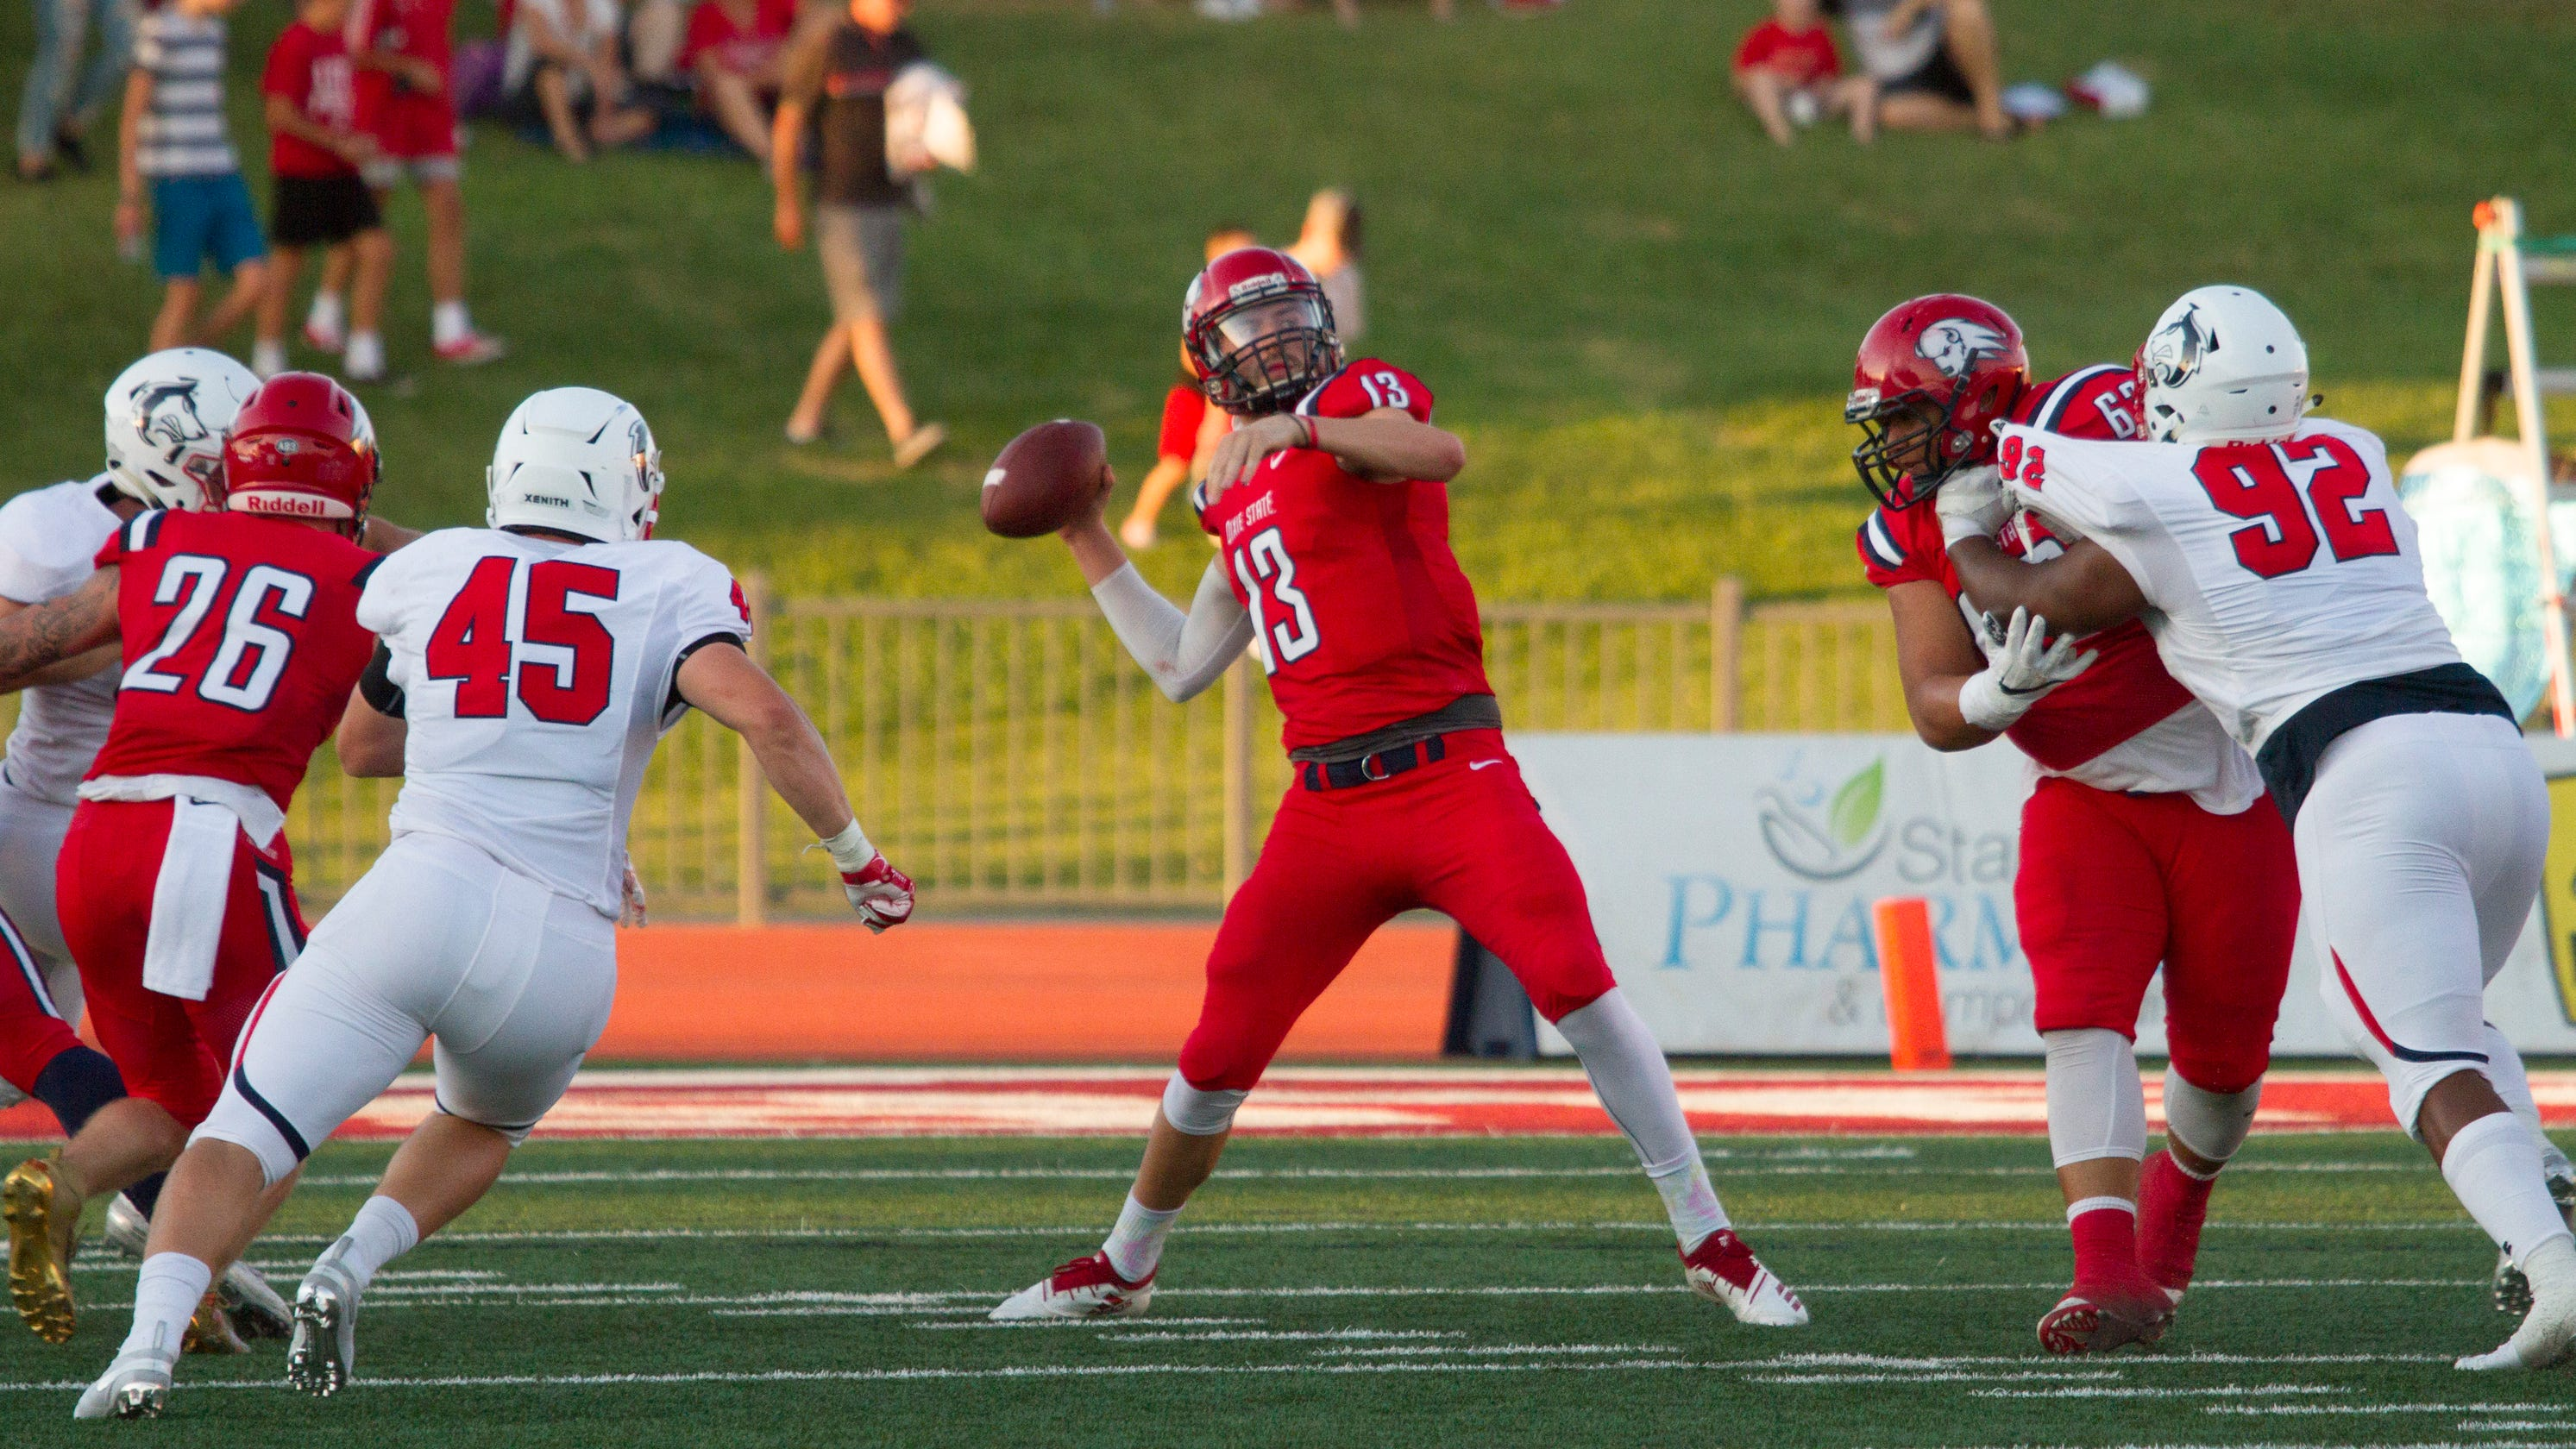 The Peterson Era begins at DSU by finding moments to build on